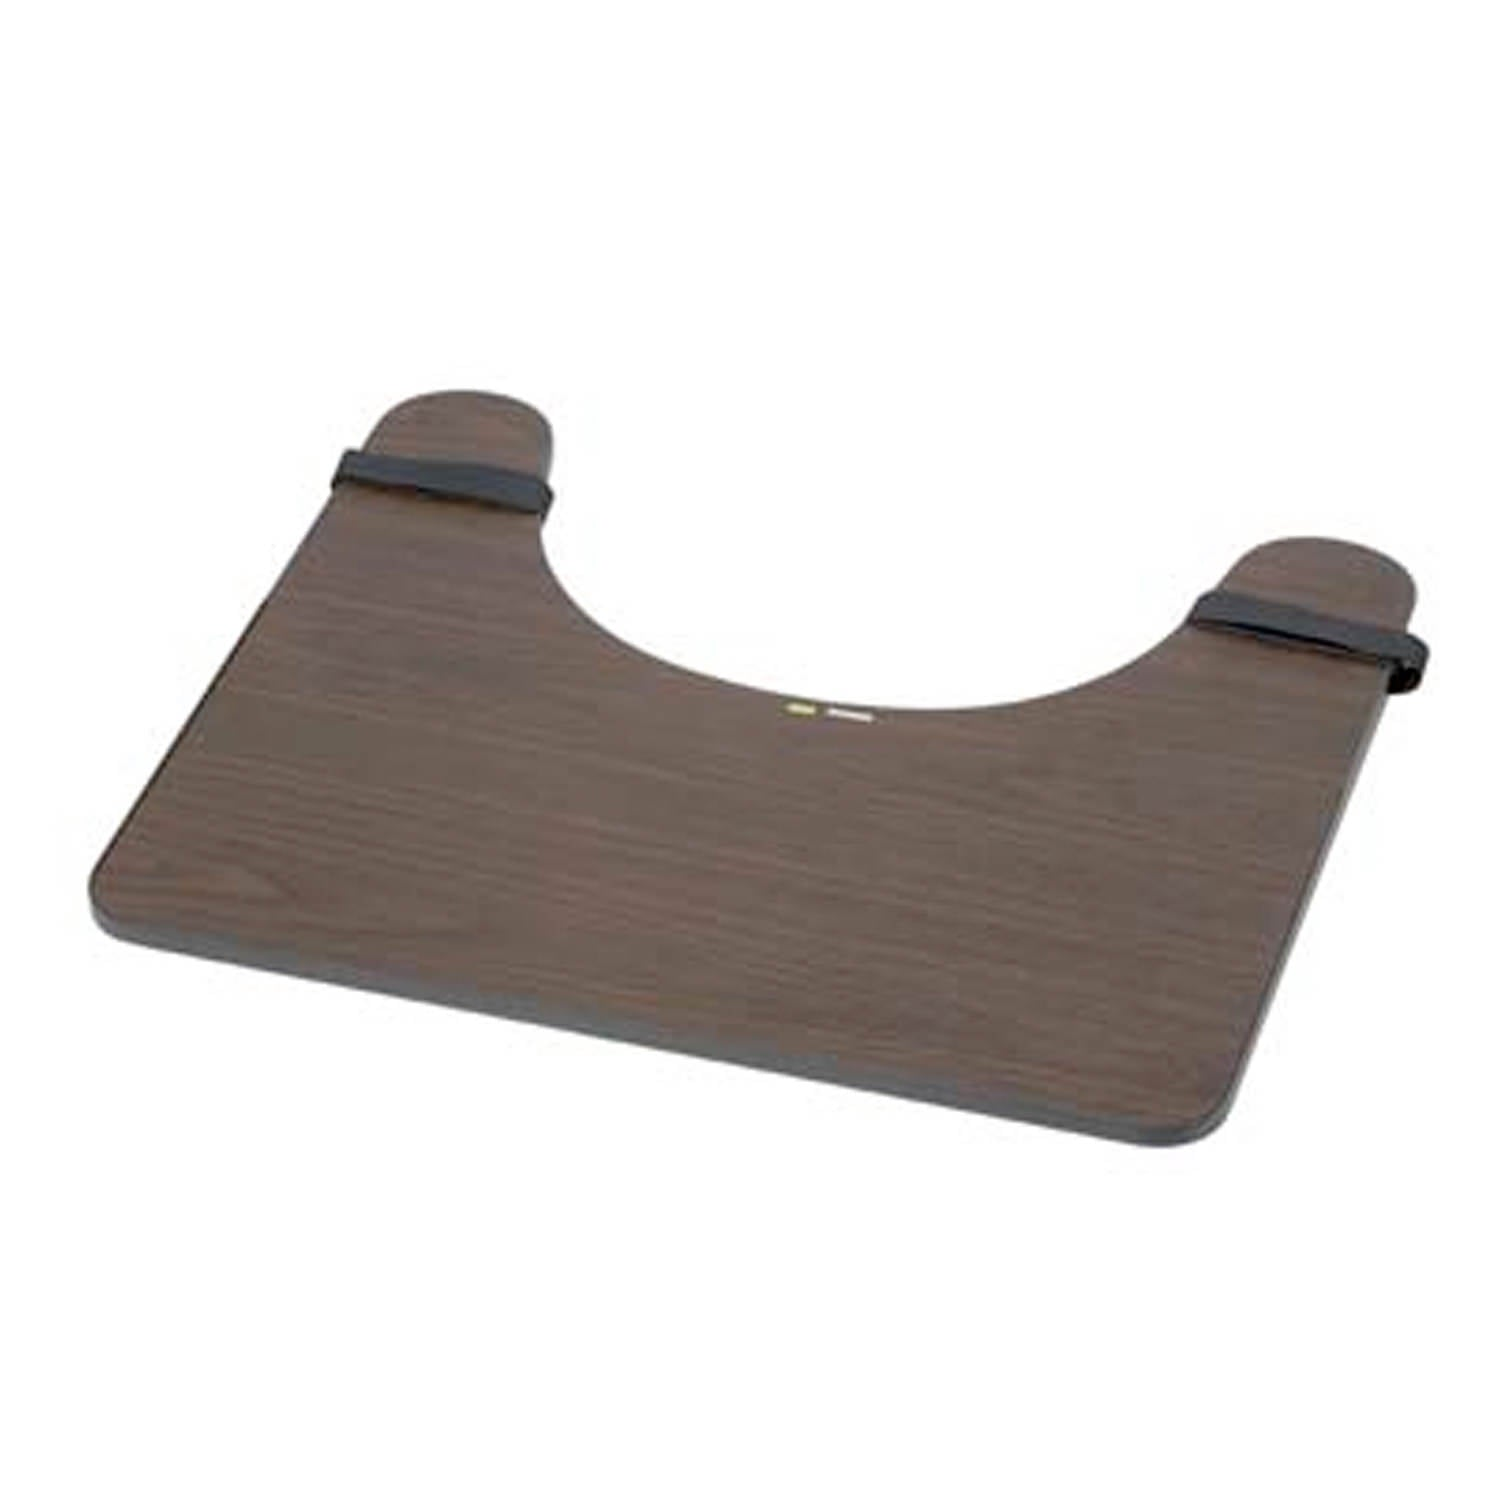 Mabis Hardwood Wheelchair Tray